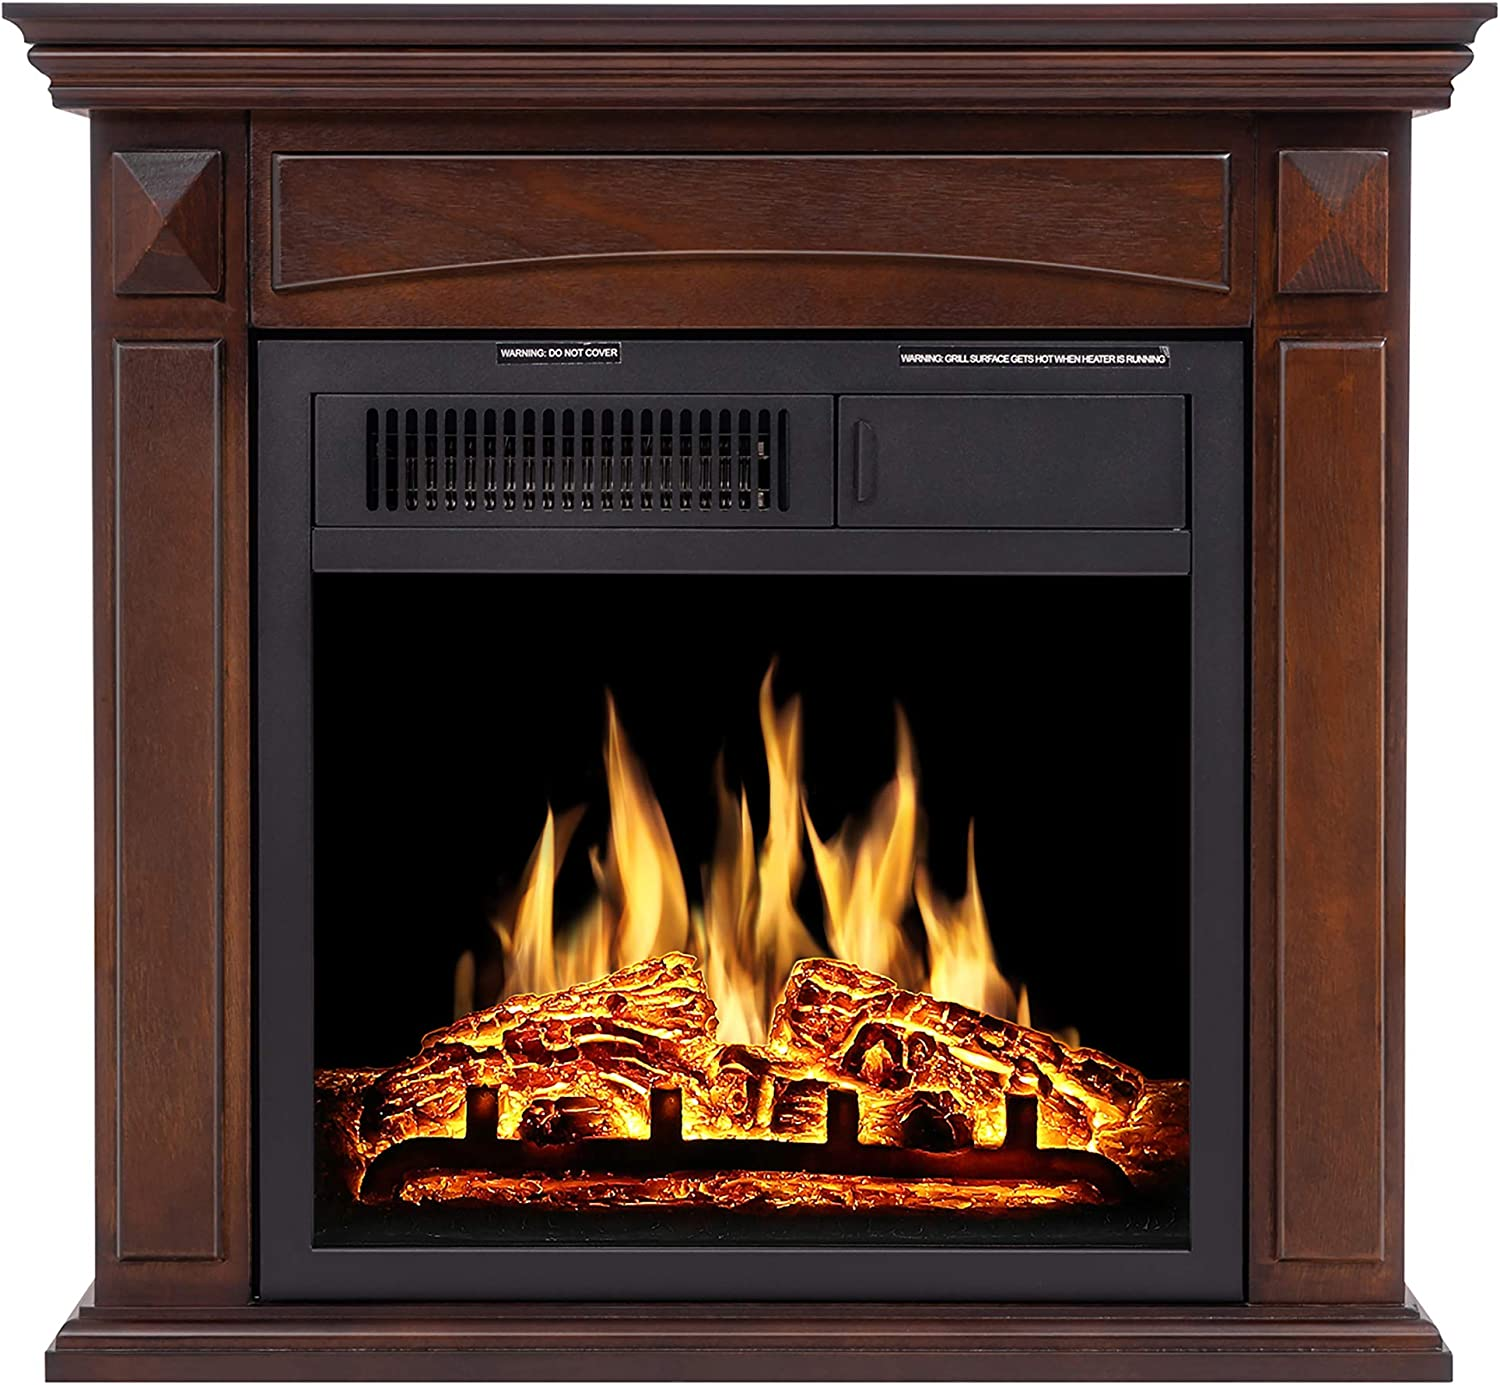 Jamfly Electric Fireplace Mantel Package Wood Surround Firebox Freestanding Corner Fireplace Infrared Quartz Heater Adjustable Led Flame W Logs Remote Control 750w 1500w Brown Home Kitchen